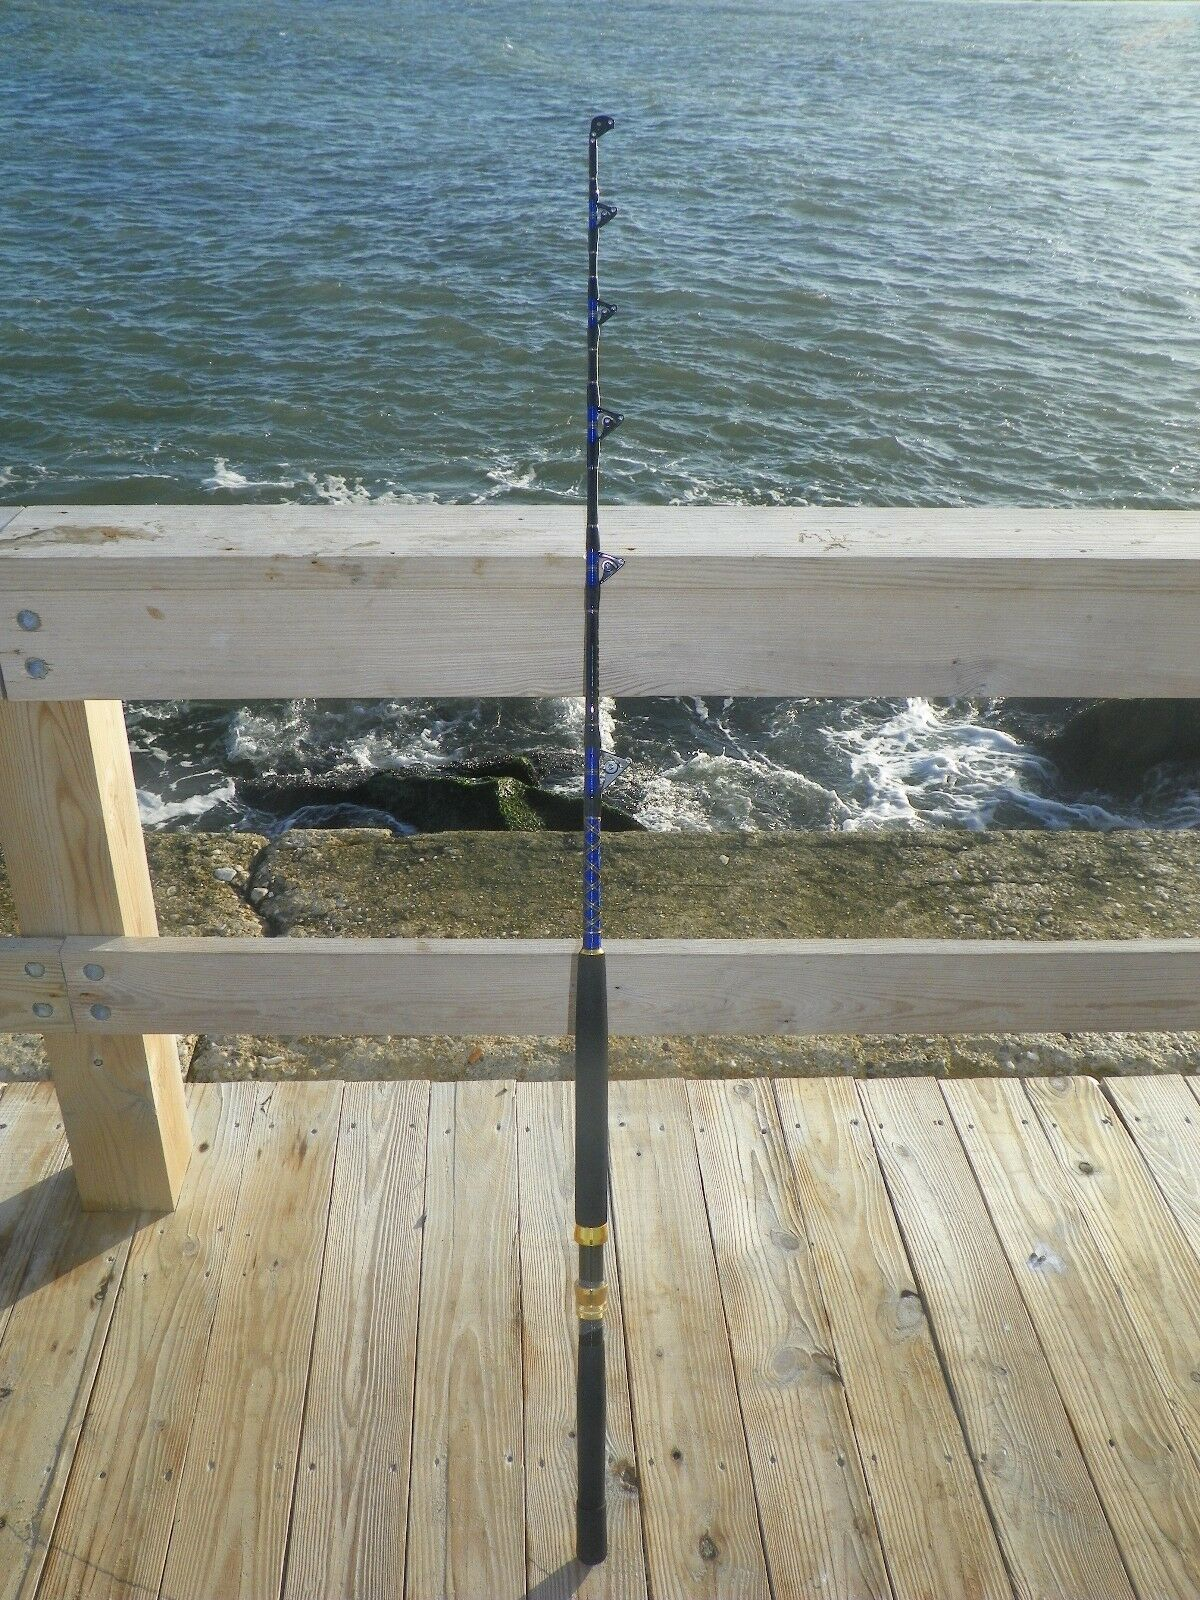 SALTWATER FISHING RODS 50-80LB FISHING FISHING POLES FISHING 50-80LB FOR PENN SHIMANO REEL 578159